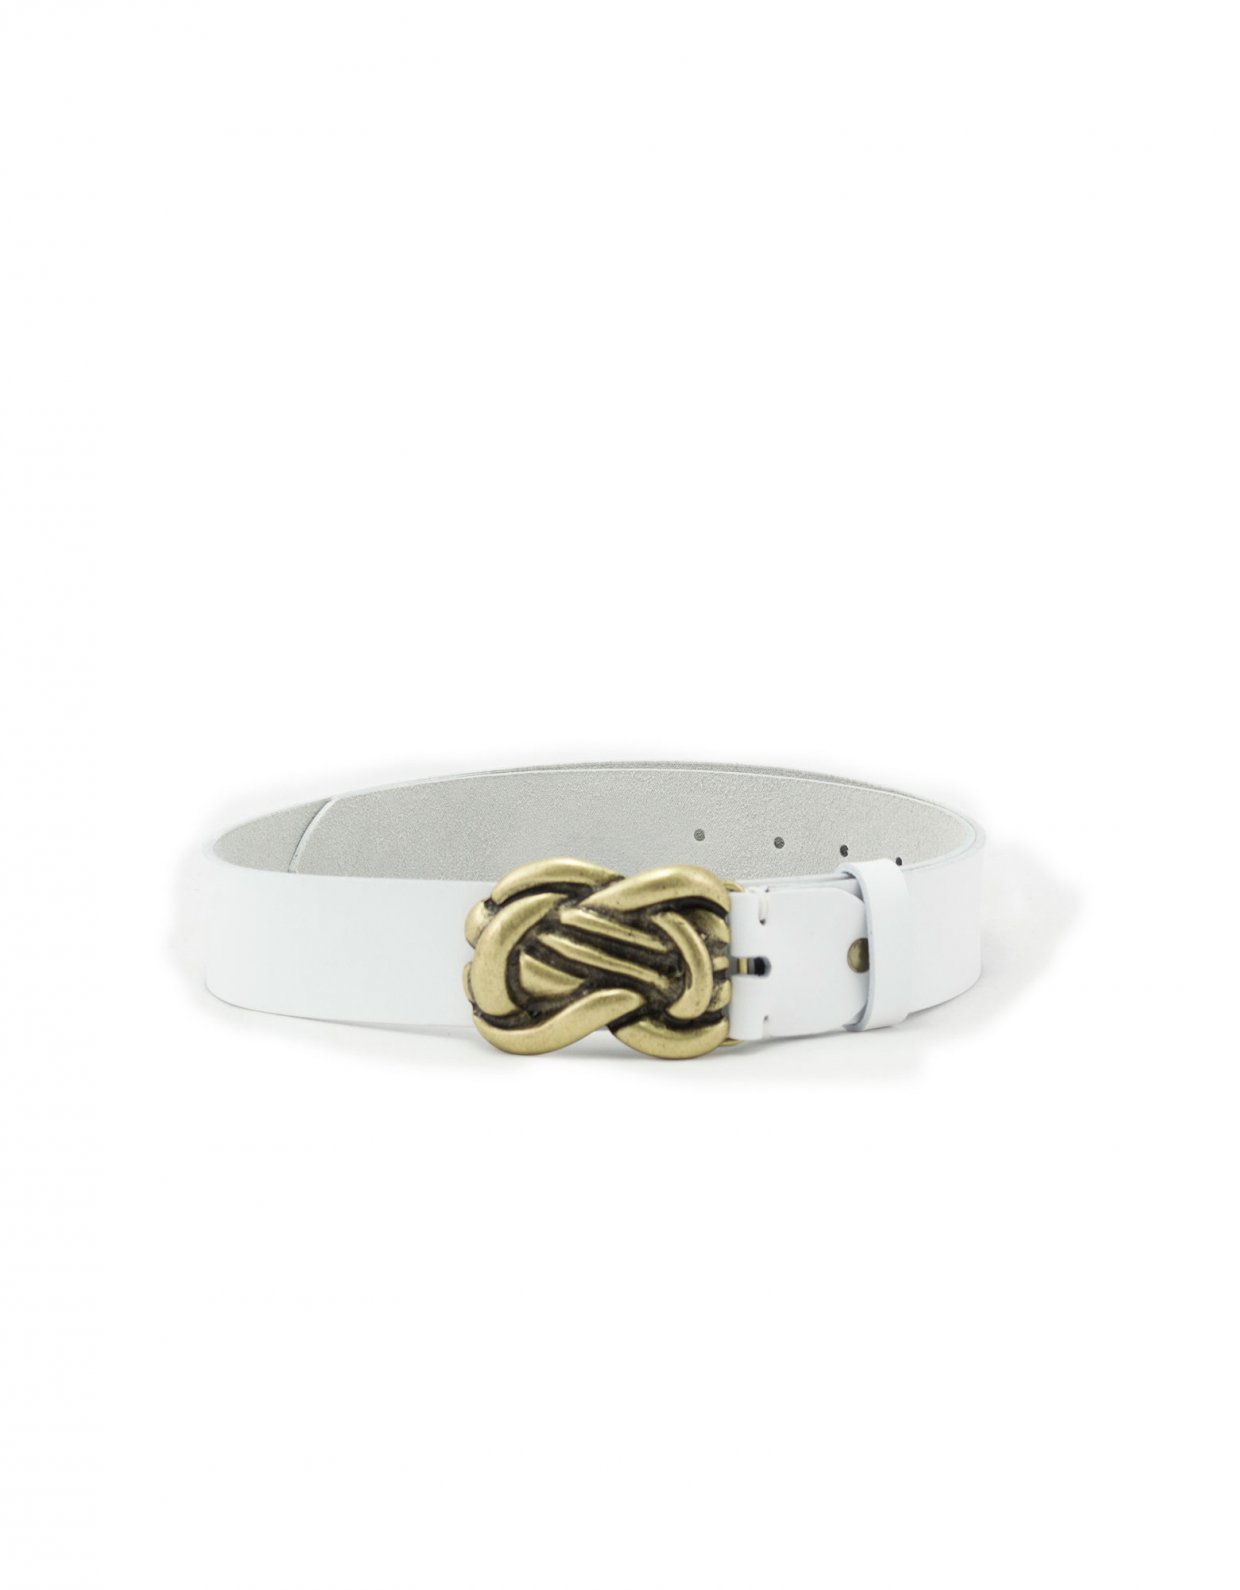 Individual Art Leather Human touch belt white